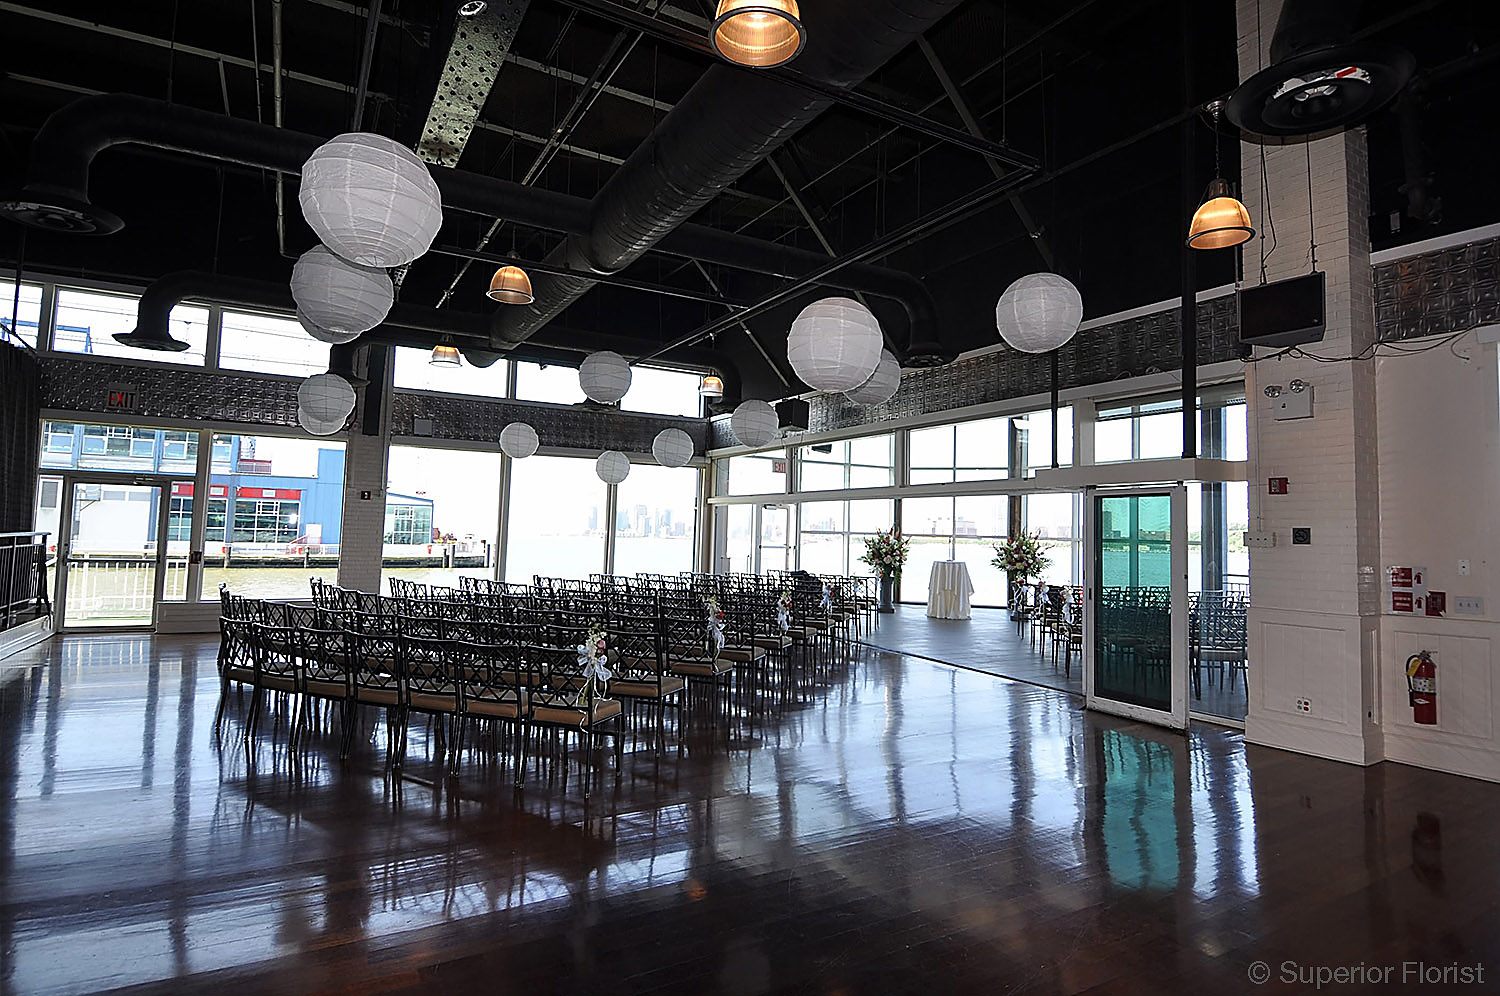 Superior Florist – Wedding Décor:  Lanterns suspended over dance floor. Seating area for wedding guests in background. The Lighthouse at Chelsea Piers, NYC.